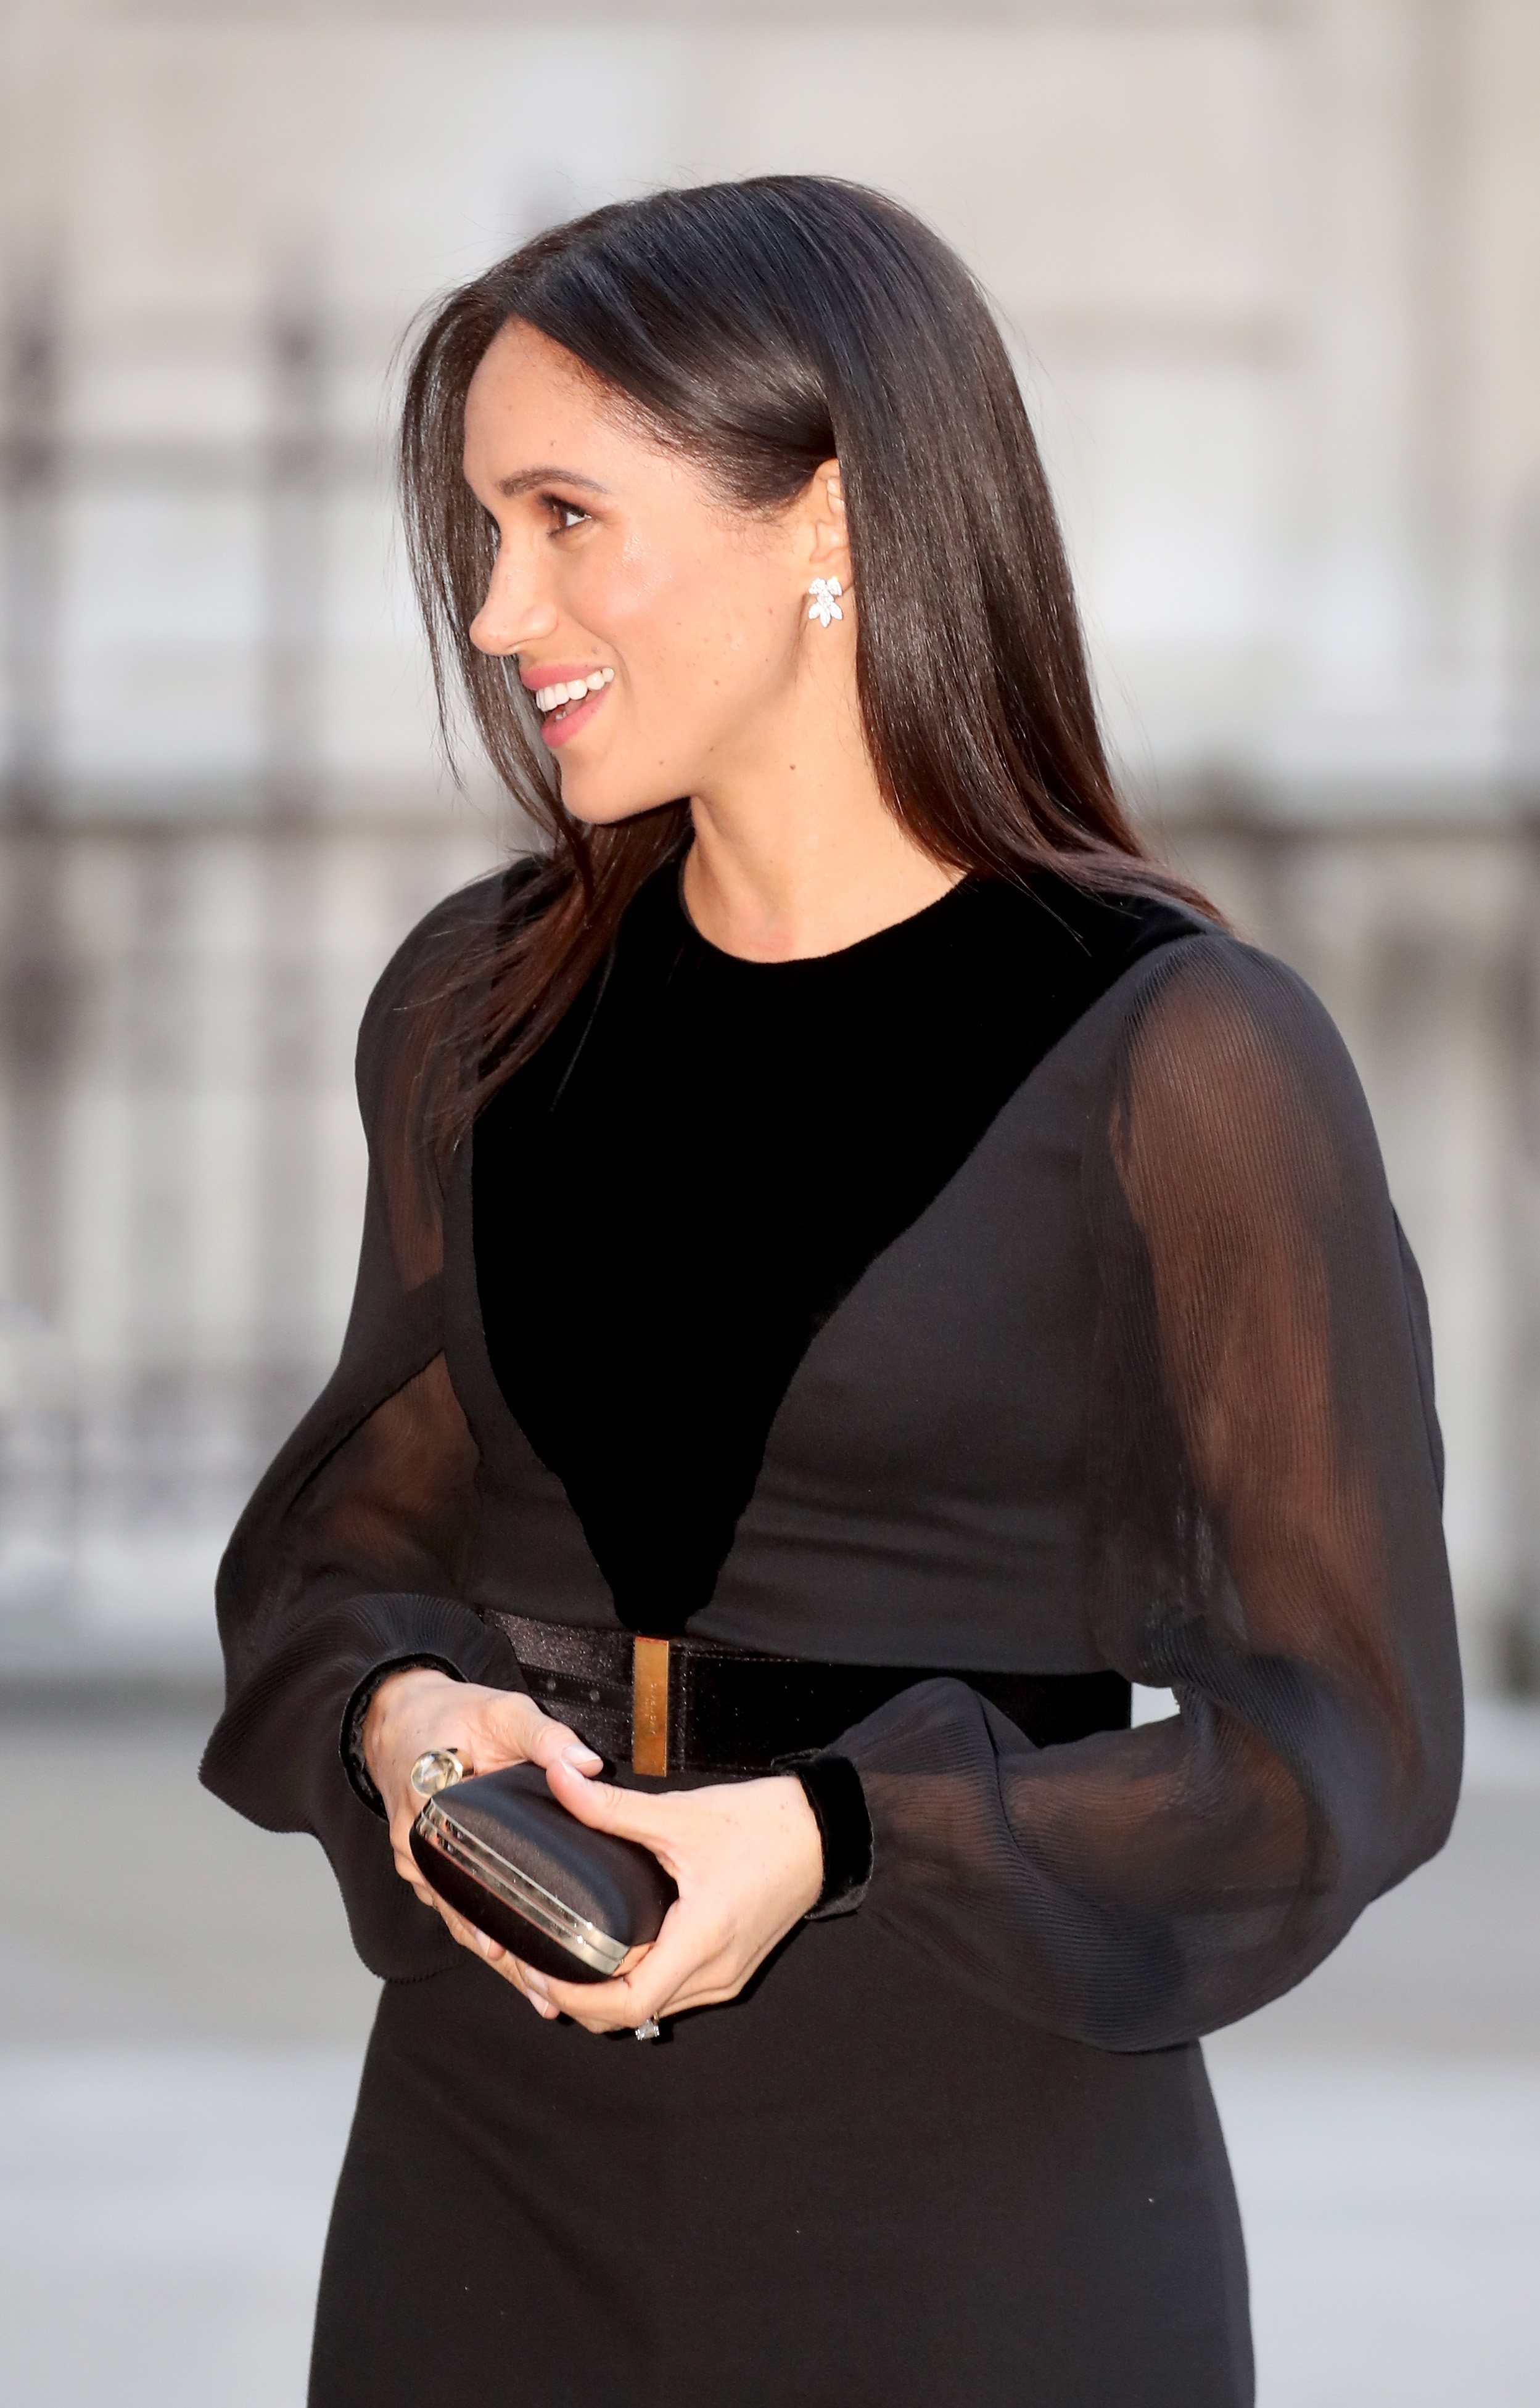 While her appearance was breathtaking, Meghan unknowingly bared a hint of her nipples in all their perky glory (Getty Images)